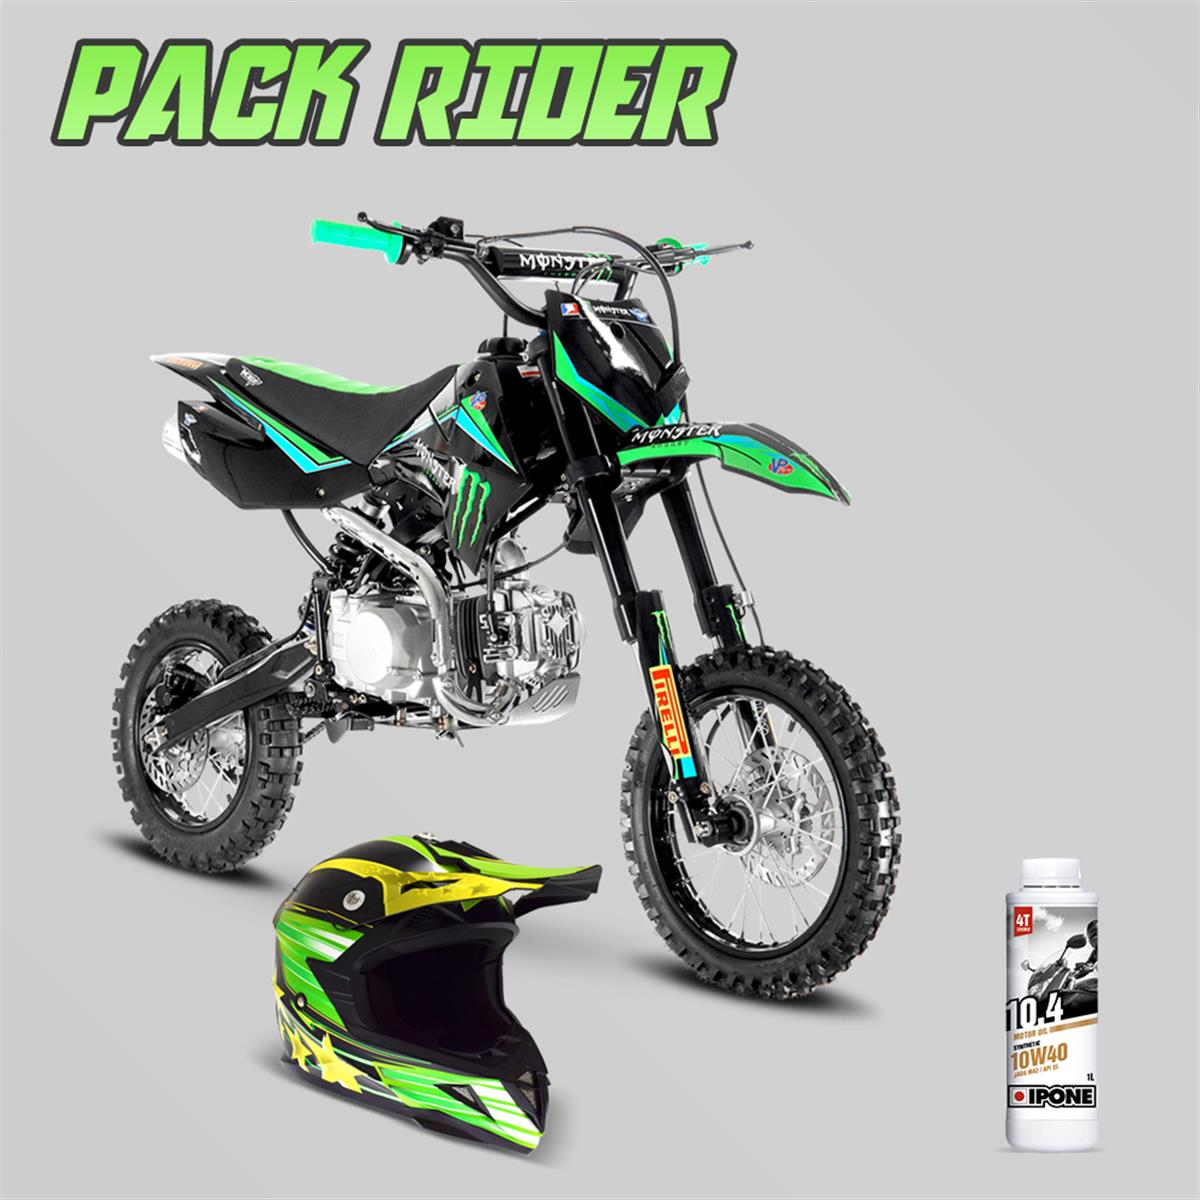 pit bike 125cc dirt bike adulte et enfant small mx smallmx dirt bike pit bike quads minimoto. Black Bedroom Furniture Sets. Home Design Ideas